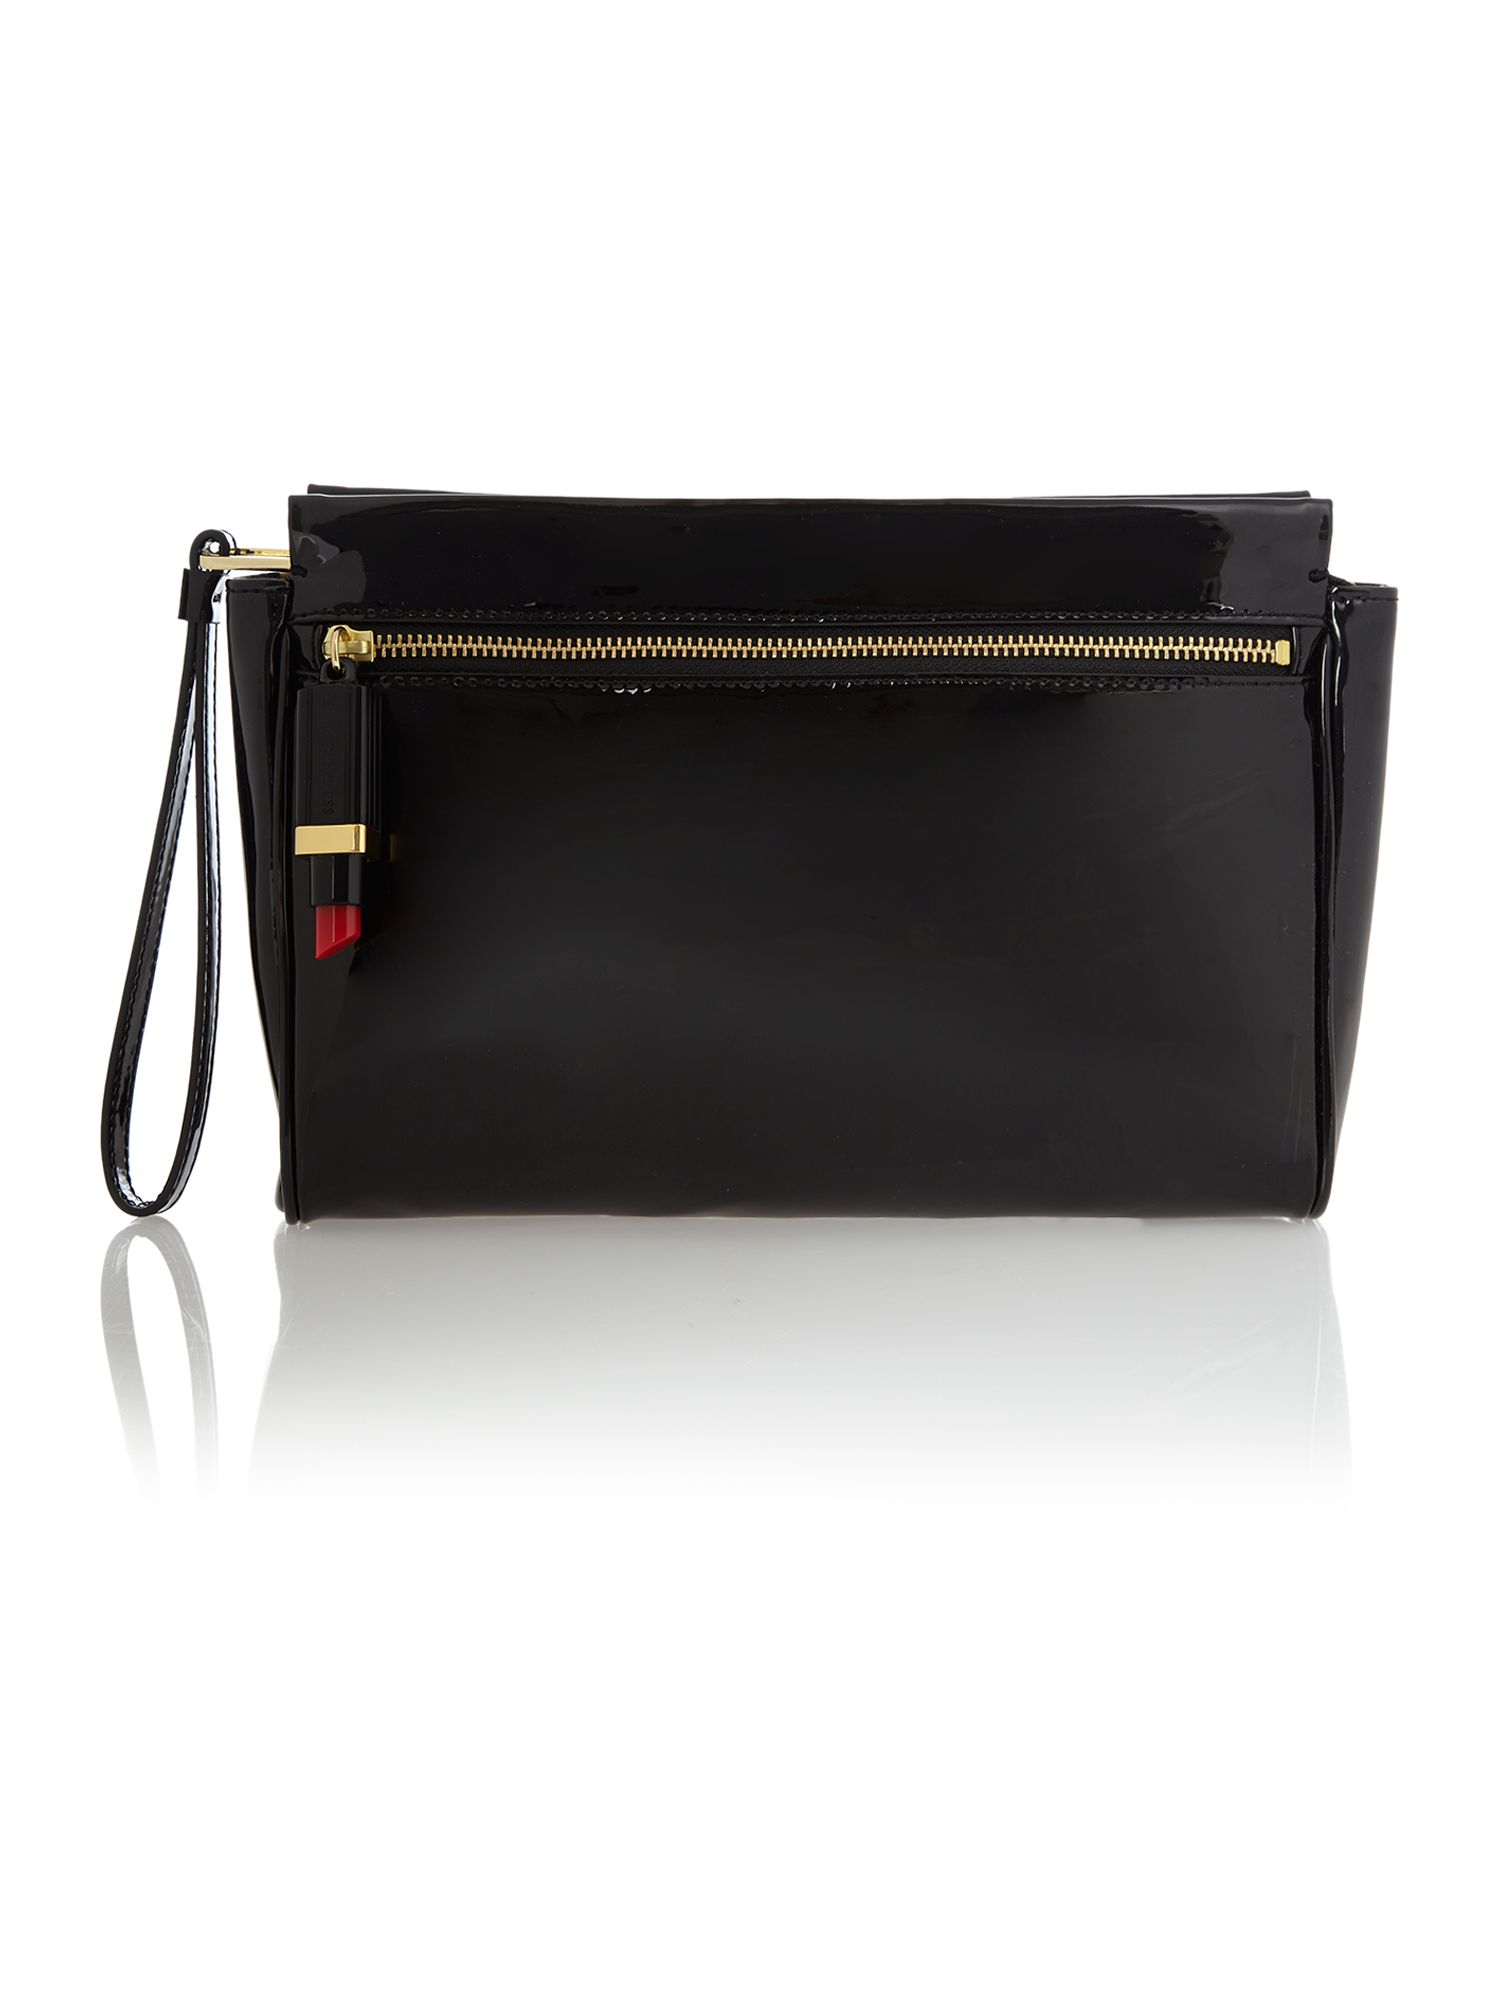 Katie patent black clutch bag